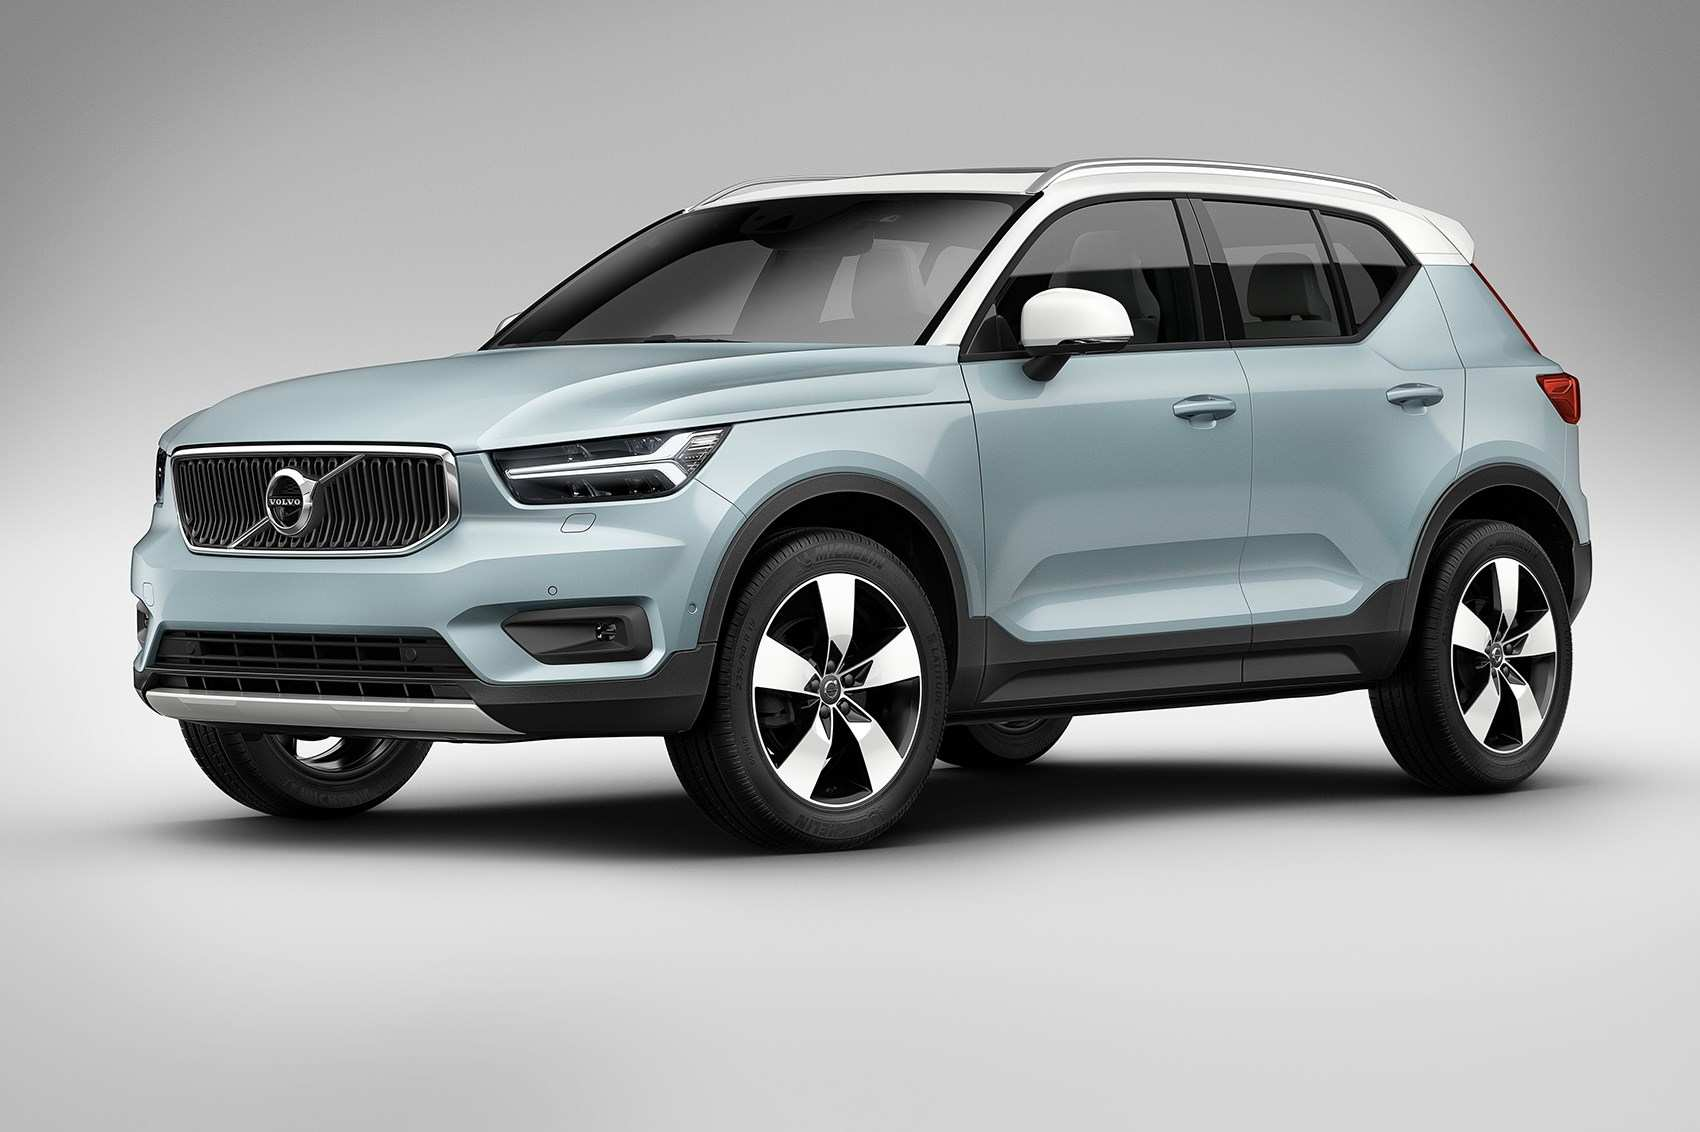 42 All New New 2019 Volvo Xc40 Lease Spesification Release Date And Concept